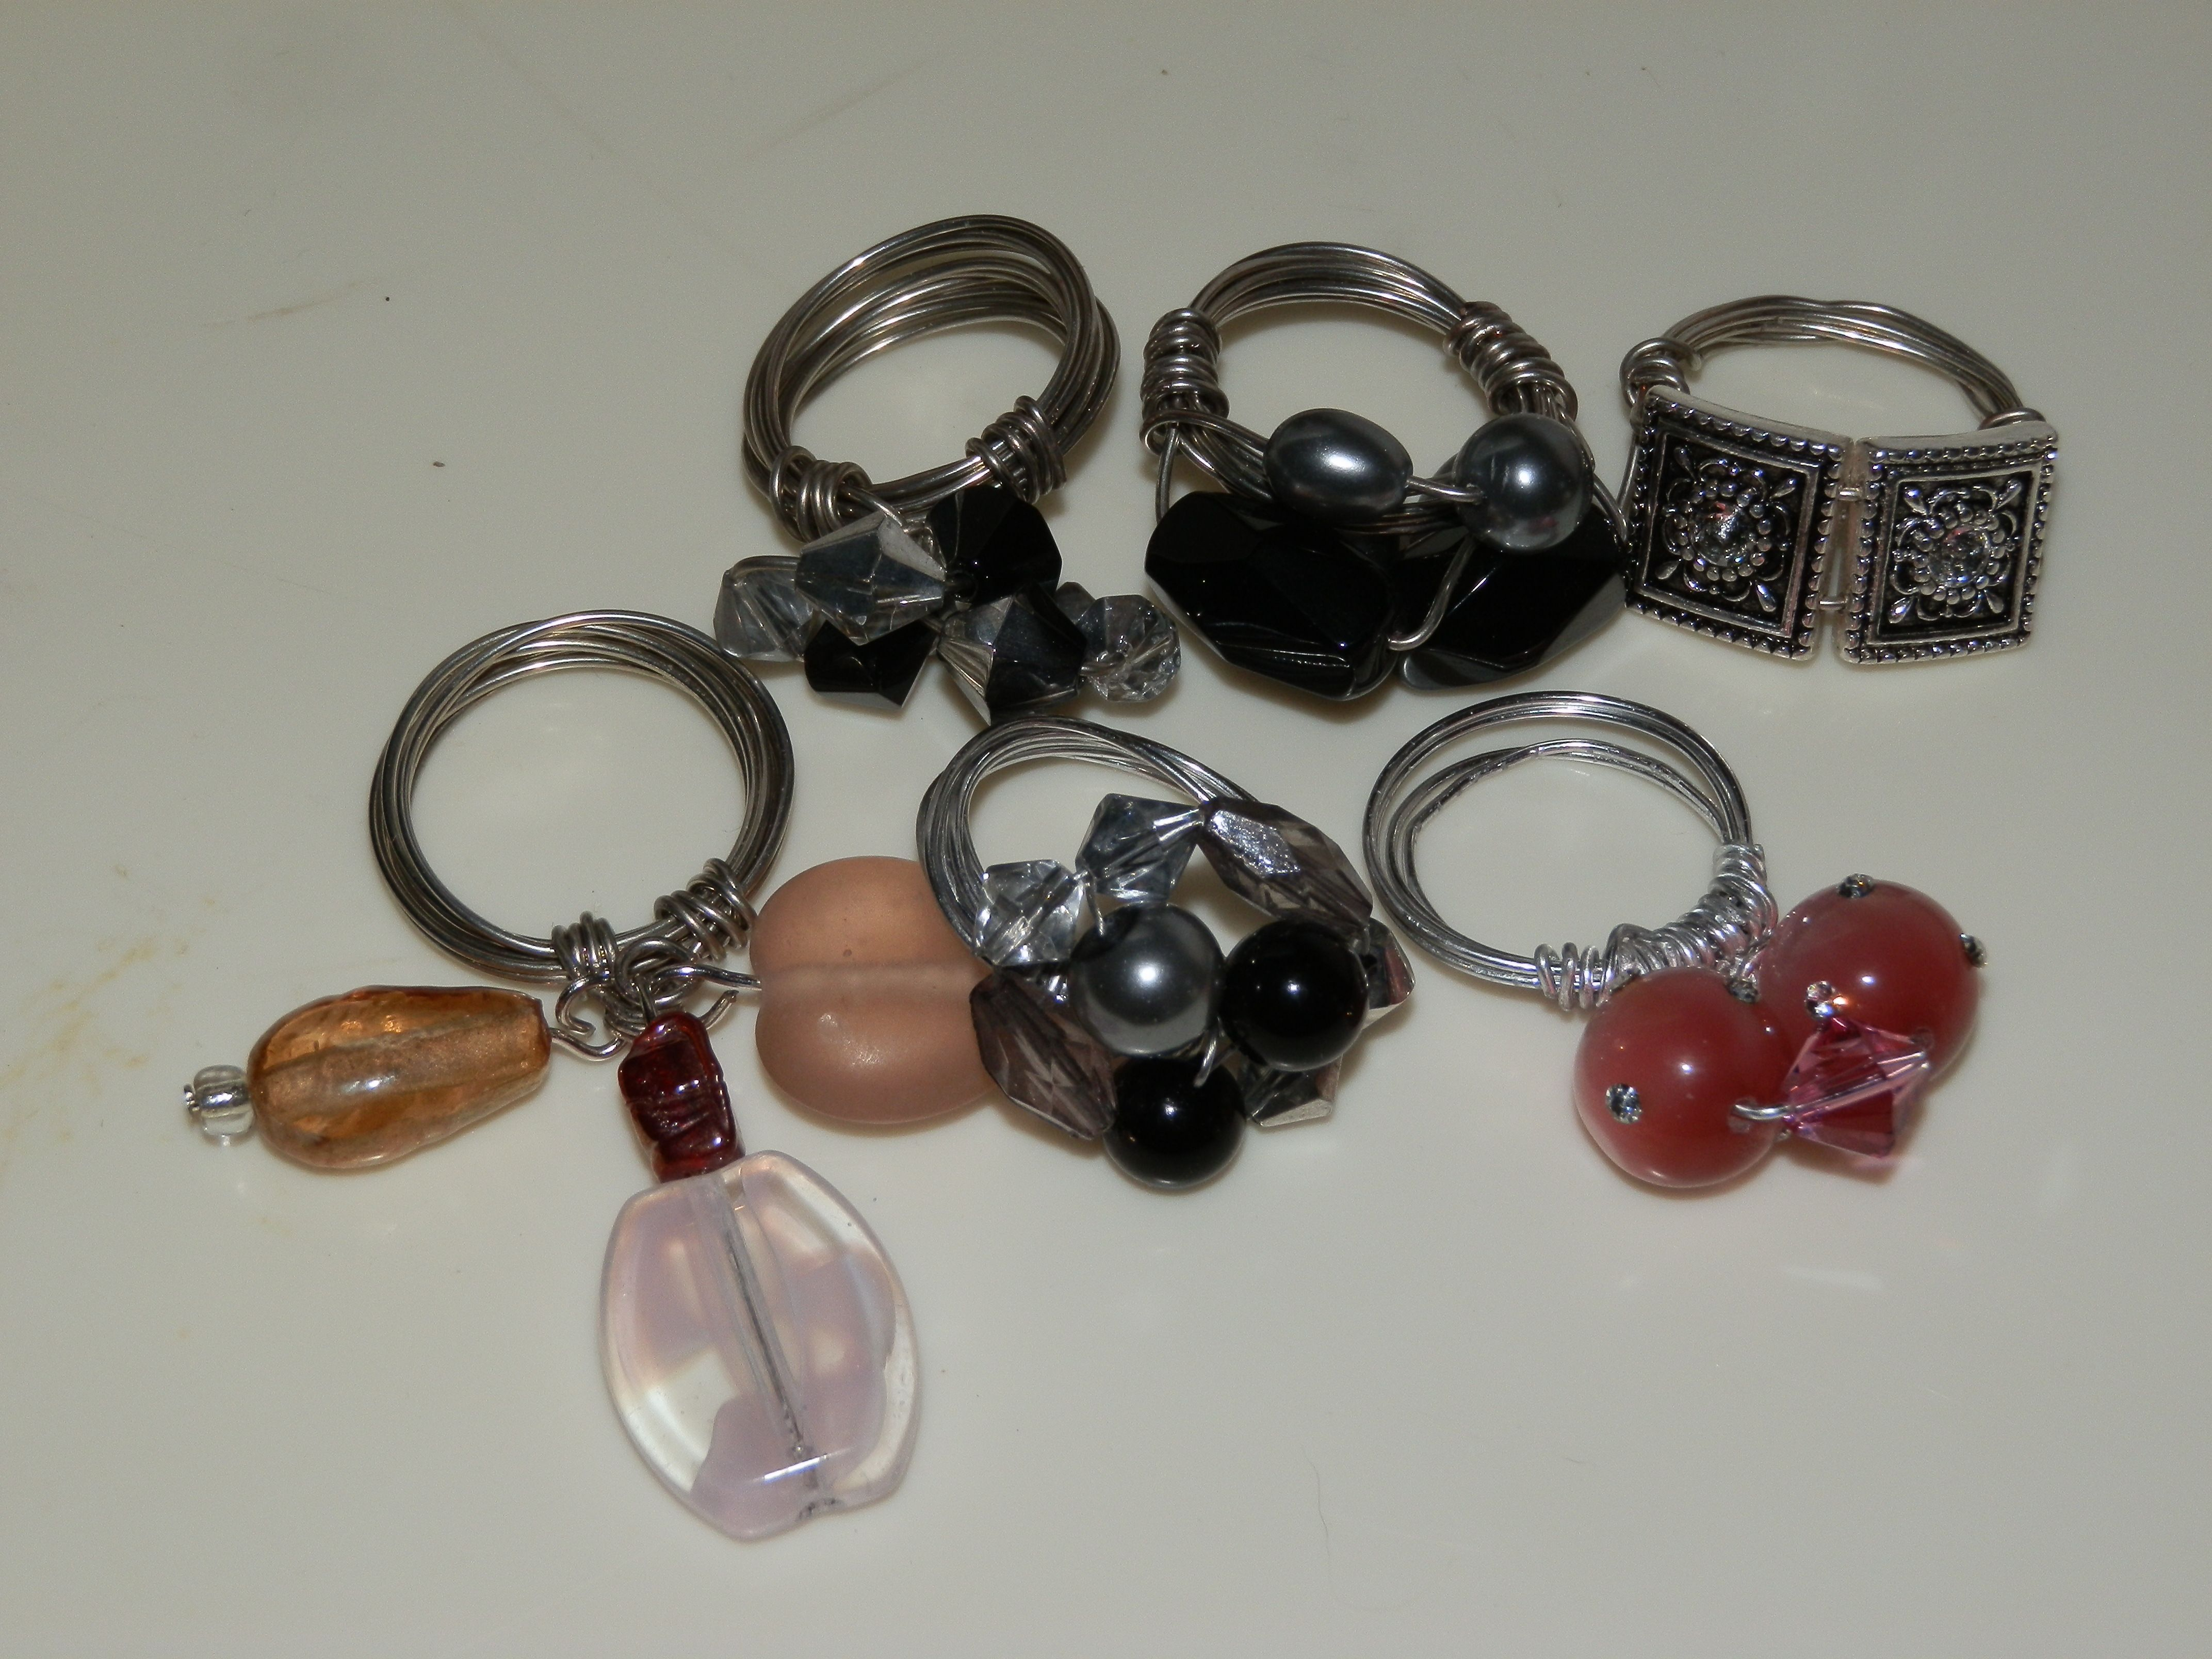 Learning how to make rings from scratch with only wire and beads ...